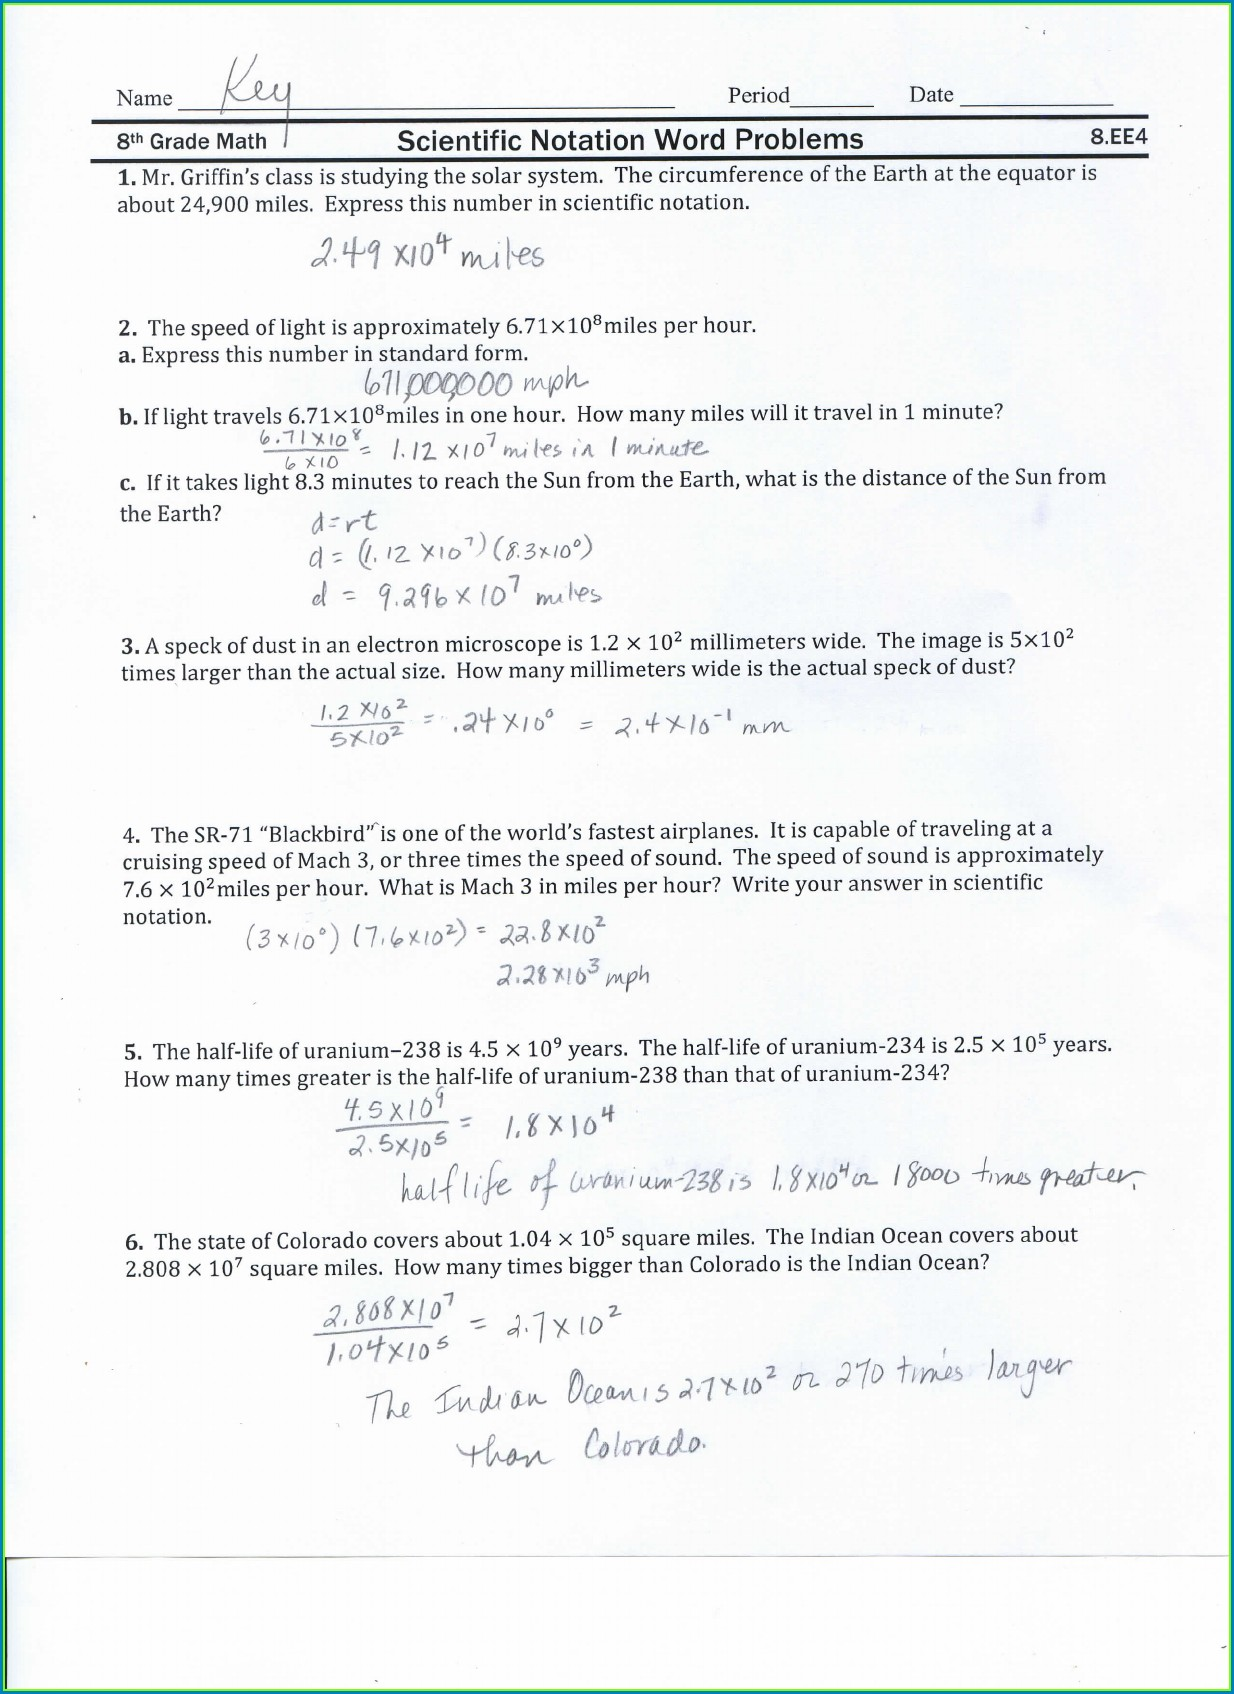 Scientific Notation Word Problems Worksheet Answer Key